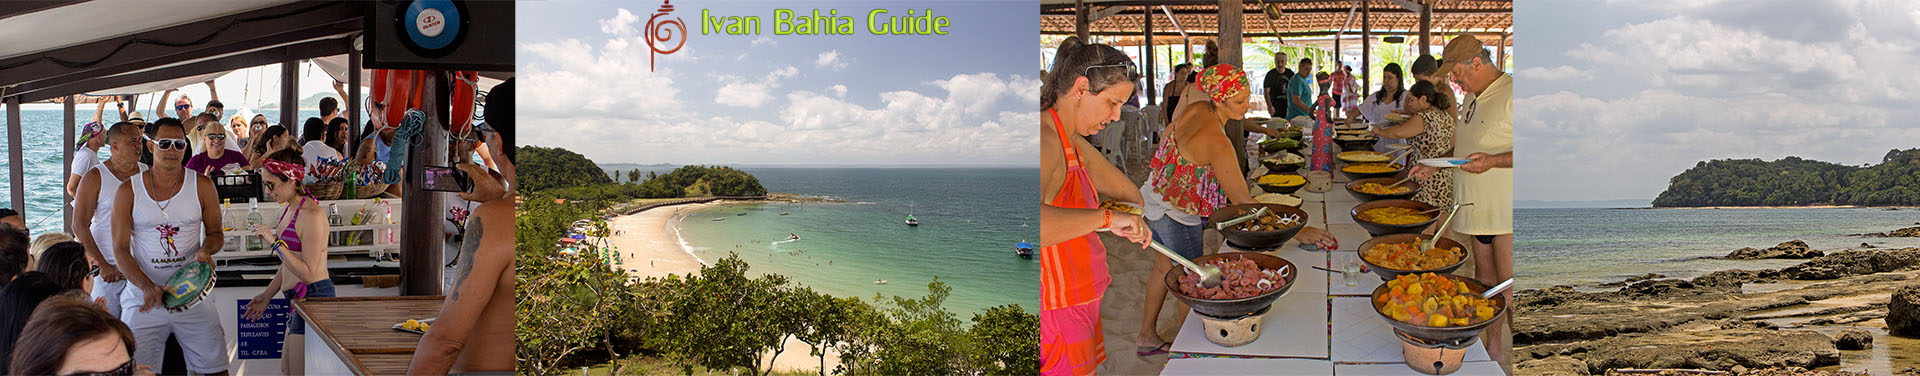 Ivan Bahia Guide - boating day on All Saints Bay / Baia de Todos os Santos, visiting the islands Frades and Itaparica with a traditional schooner (samba music on board)